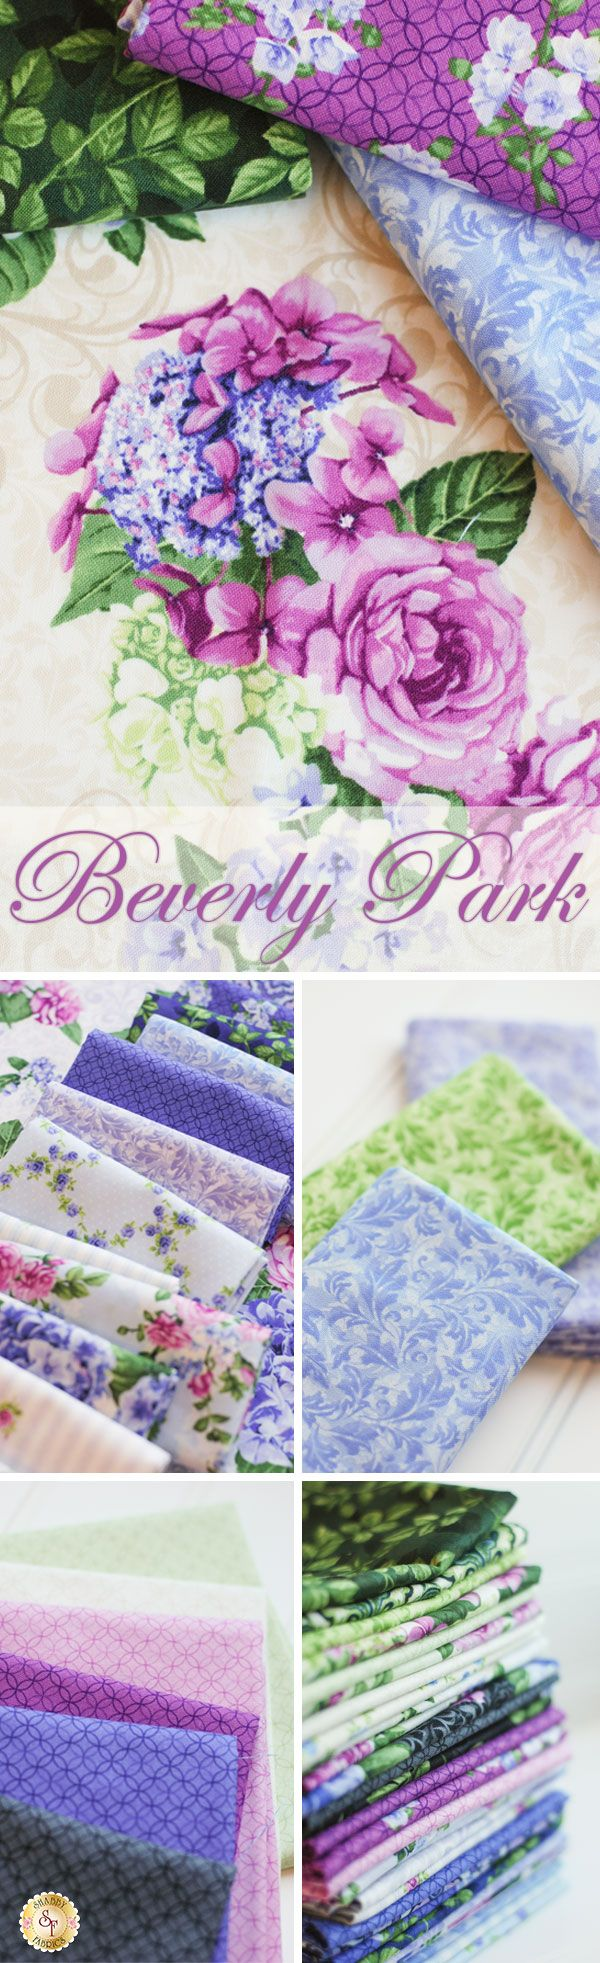 Beverly Park - RJR Fabrics Add beauty and elegance to your fabric collection with the Beverly Park line from RJR Fabrics. This romantic line incorporates tiny rosebuds, blooming flowers, and vibrant paisleys for a striking yet soft collection. Feminine and colorful, the Beverly Park collection features purples, fuchsias, and greens with both bold and muted designs.